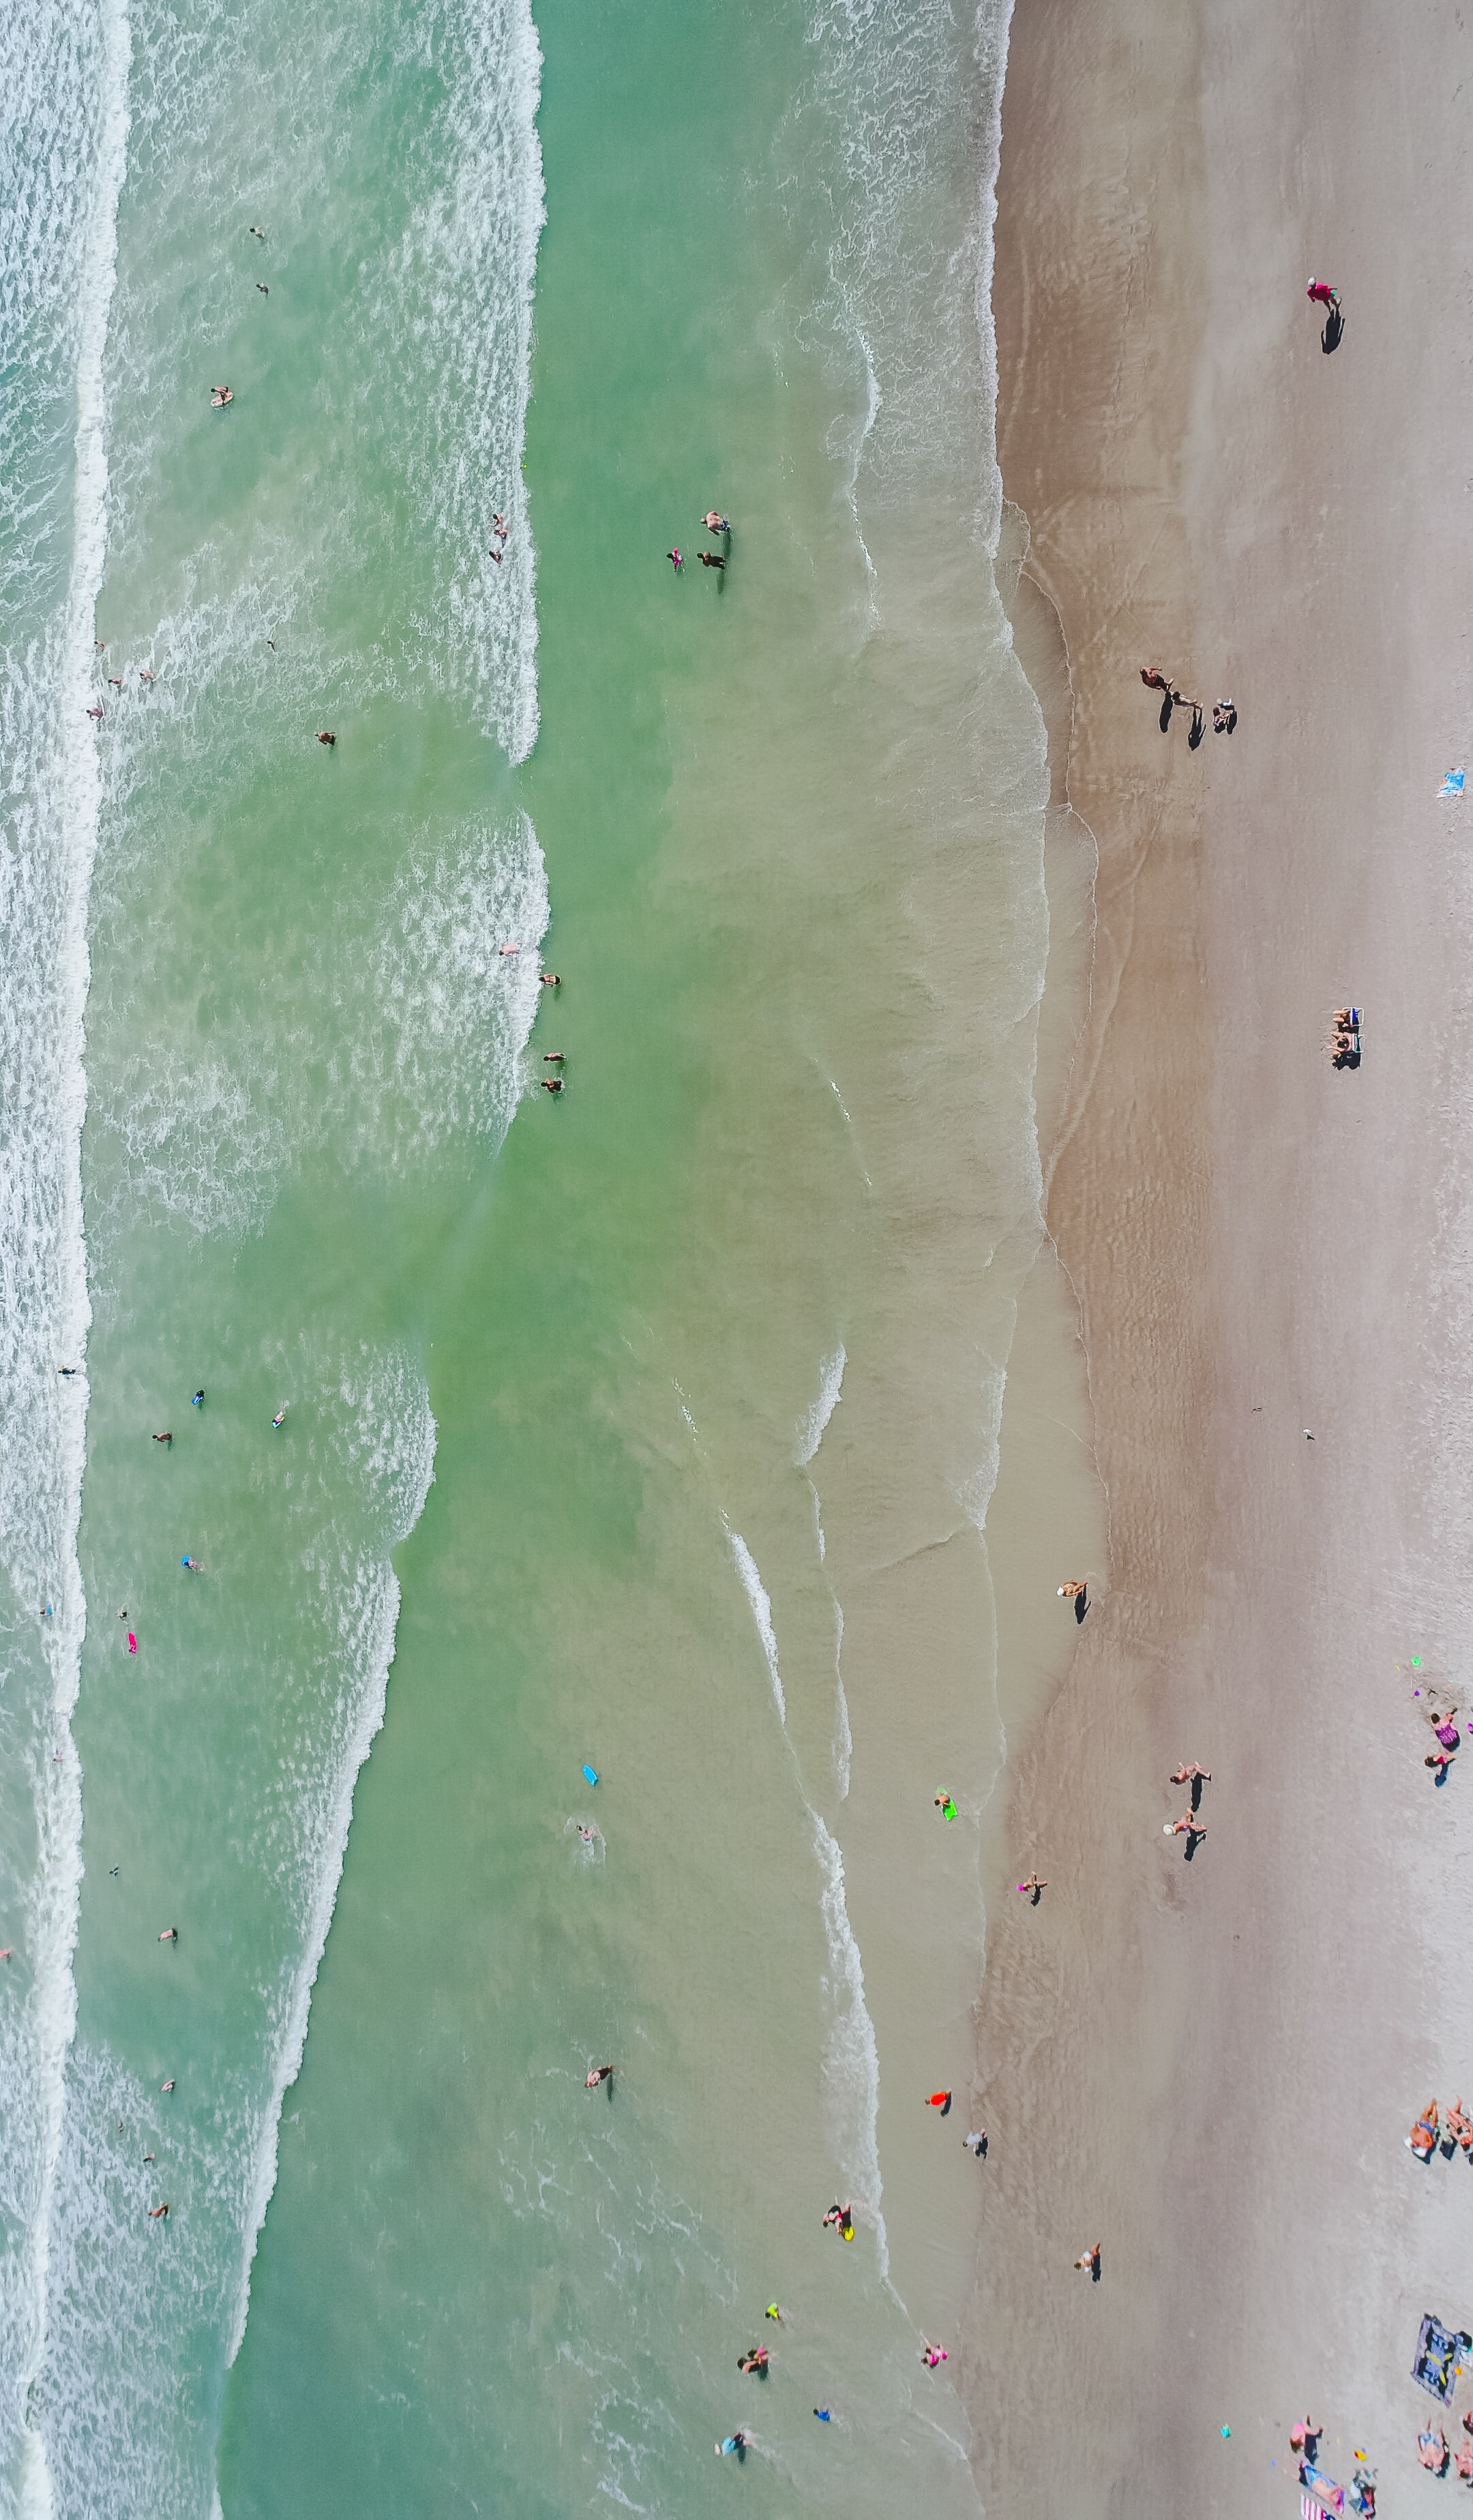 A drone shot of tourists sunbathing on a golden beach and swimming in warm sea water